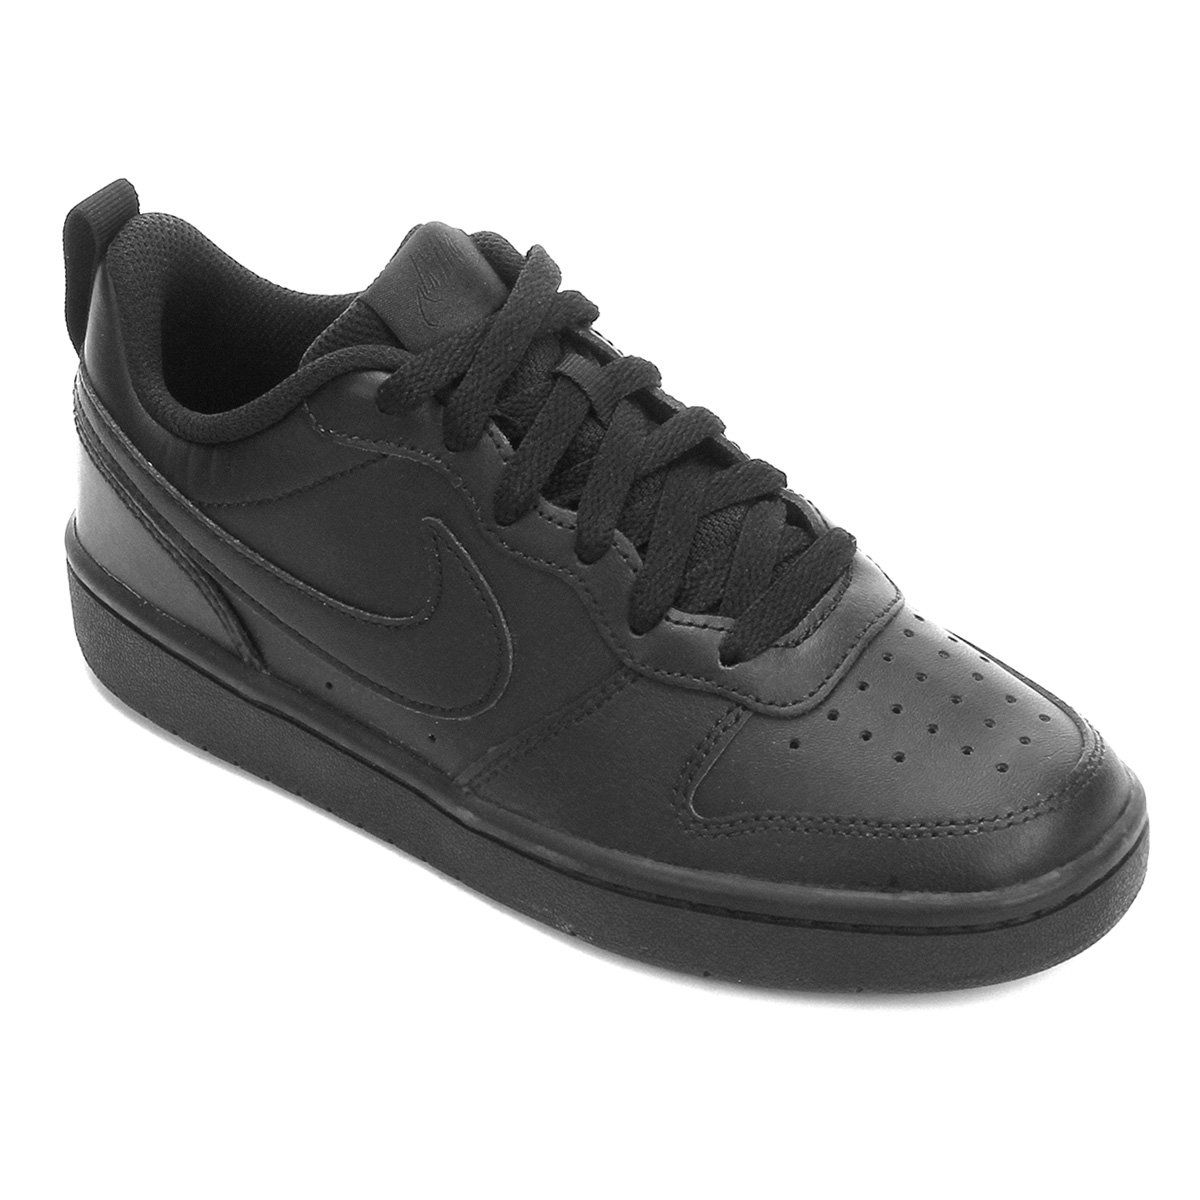 Tenis Nike Court Borough Low 2 Gs